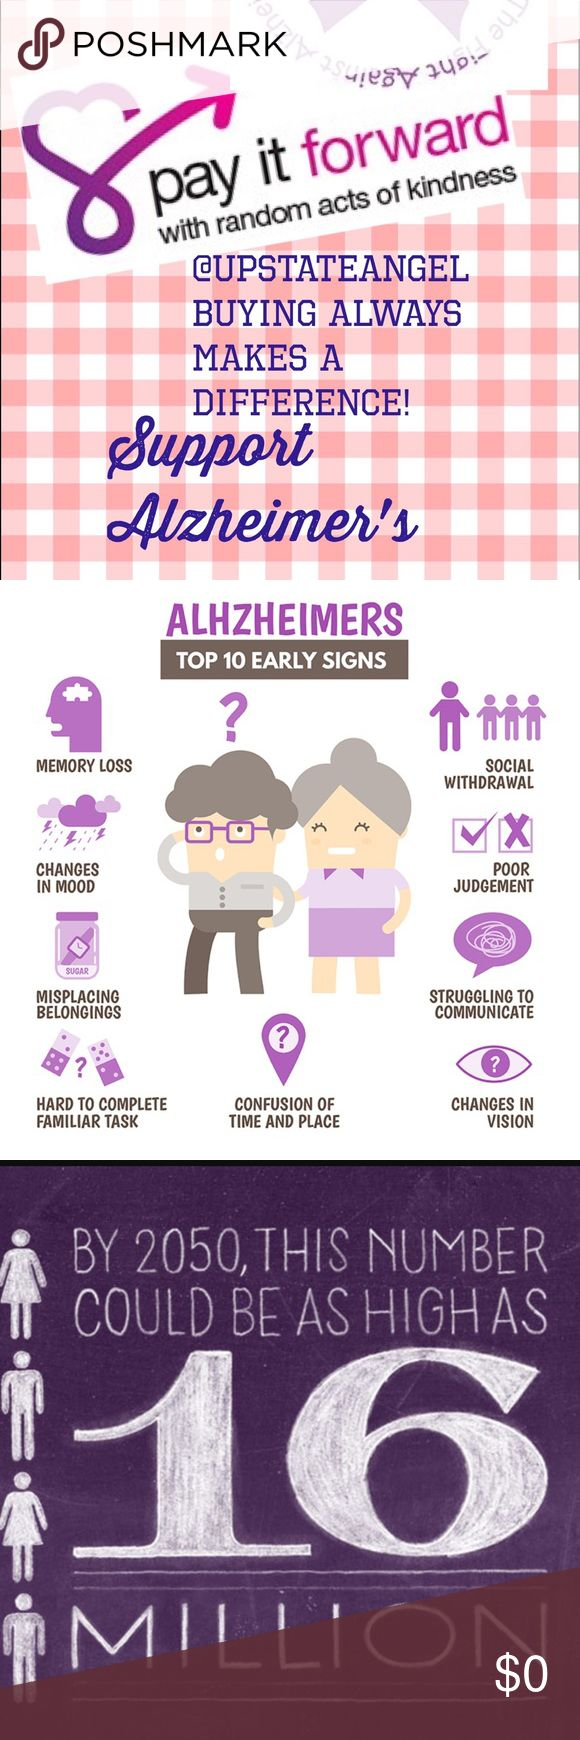 """All Sales & Bundles Support Alzheimer's! I am only one person. How could I use the pain of losing my dad? I would """"Pay It Forward""""! Every Sale has a portion of it going to The Alzheimer's Foundation! I might be one.. Together, we can make a small difference! Other"""